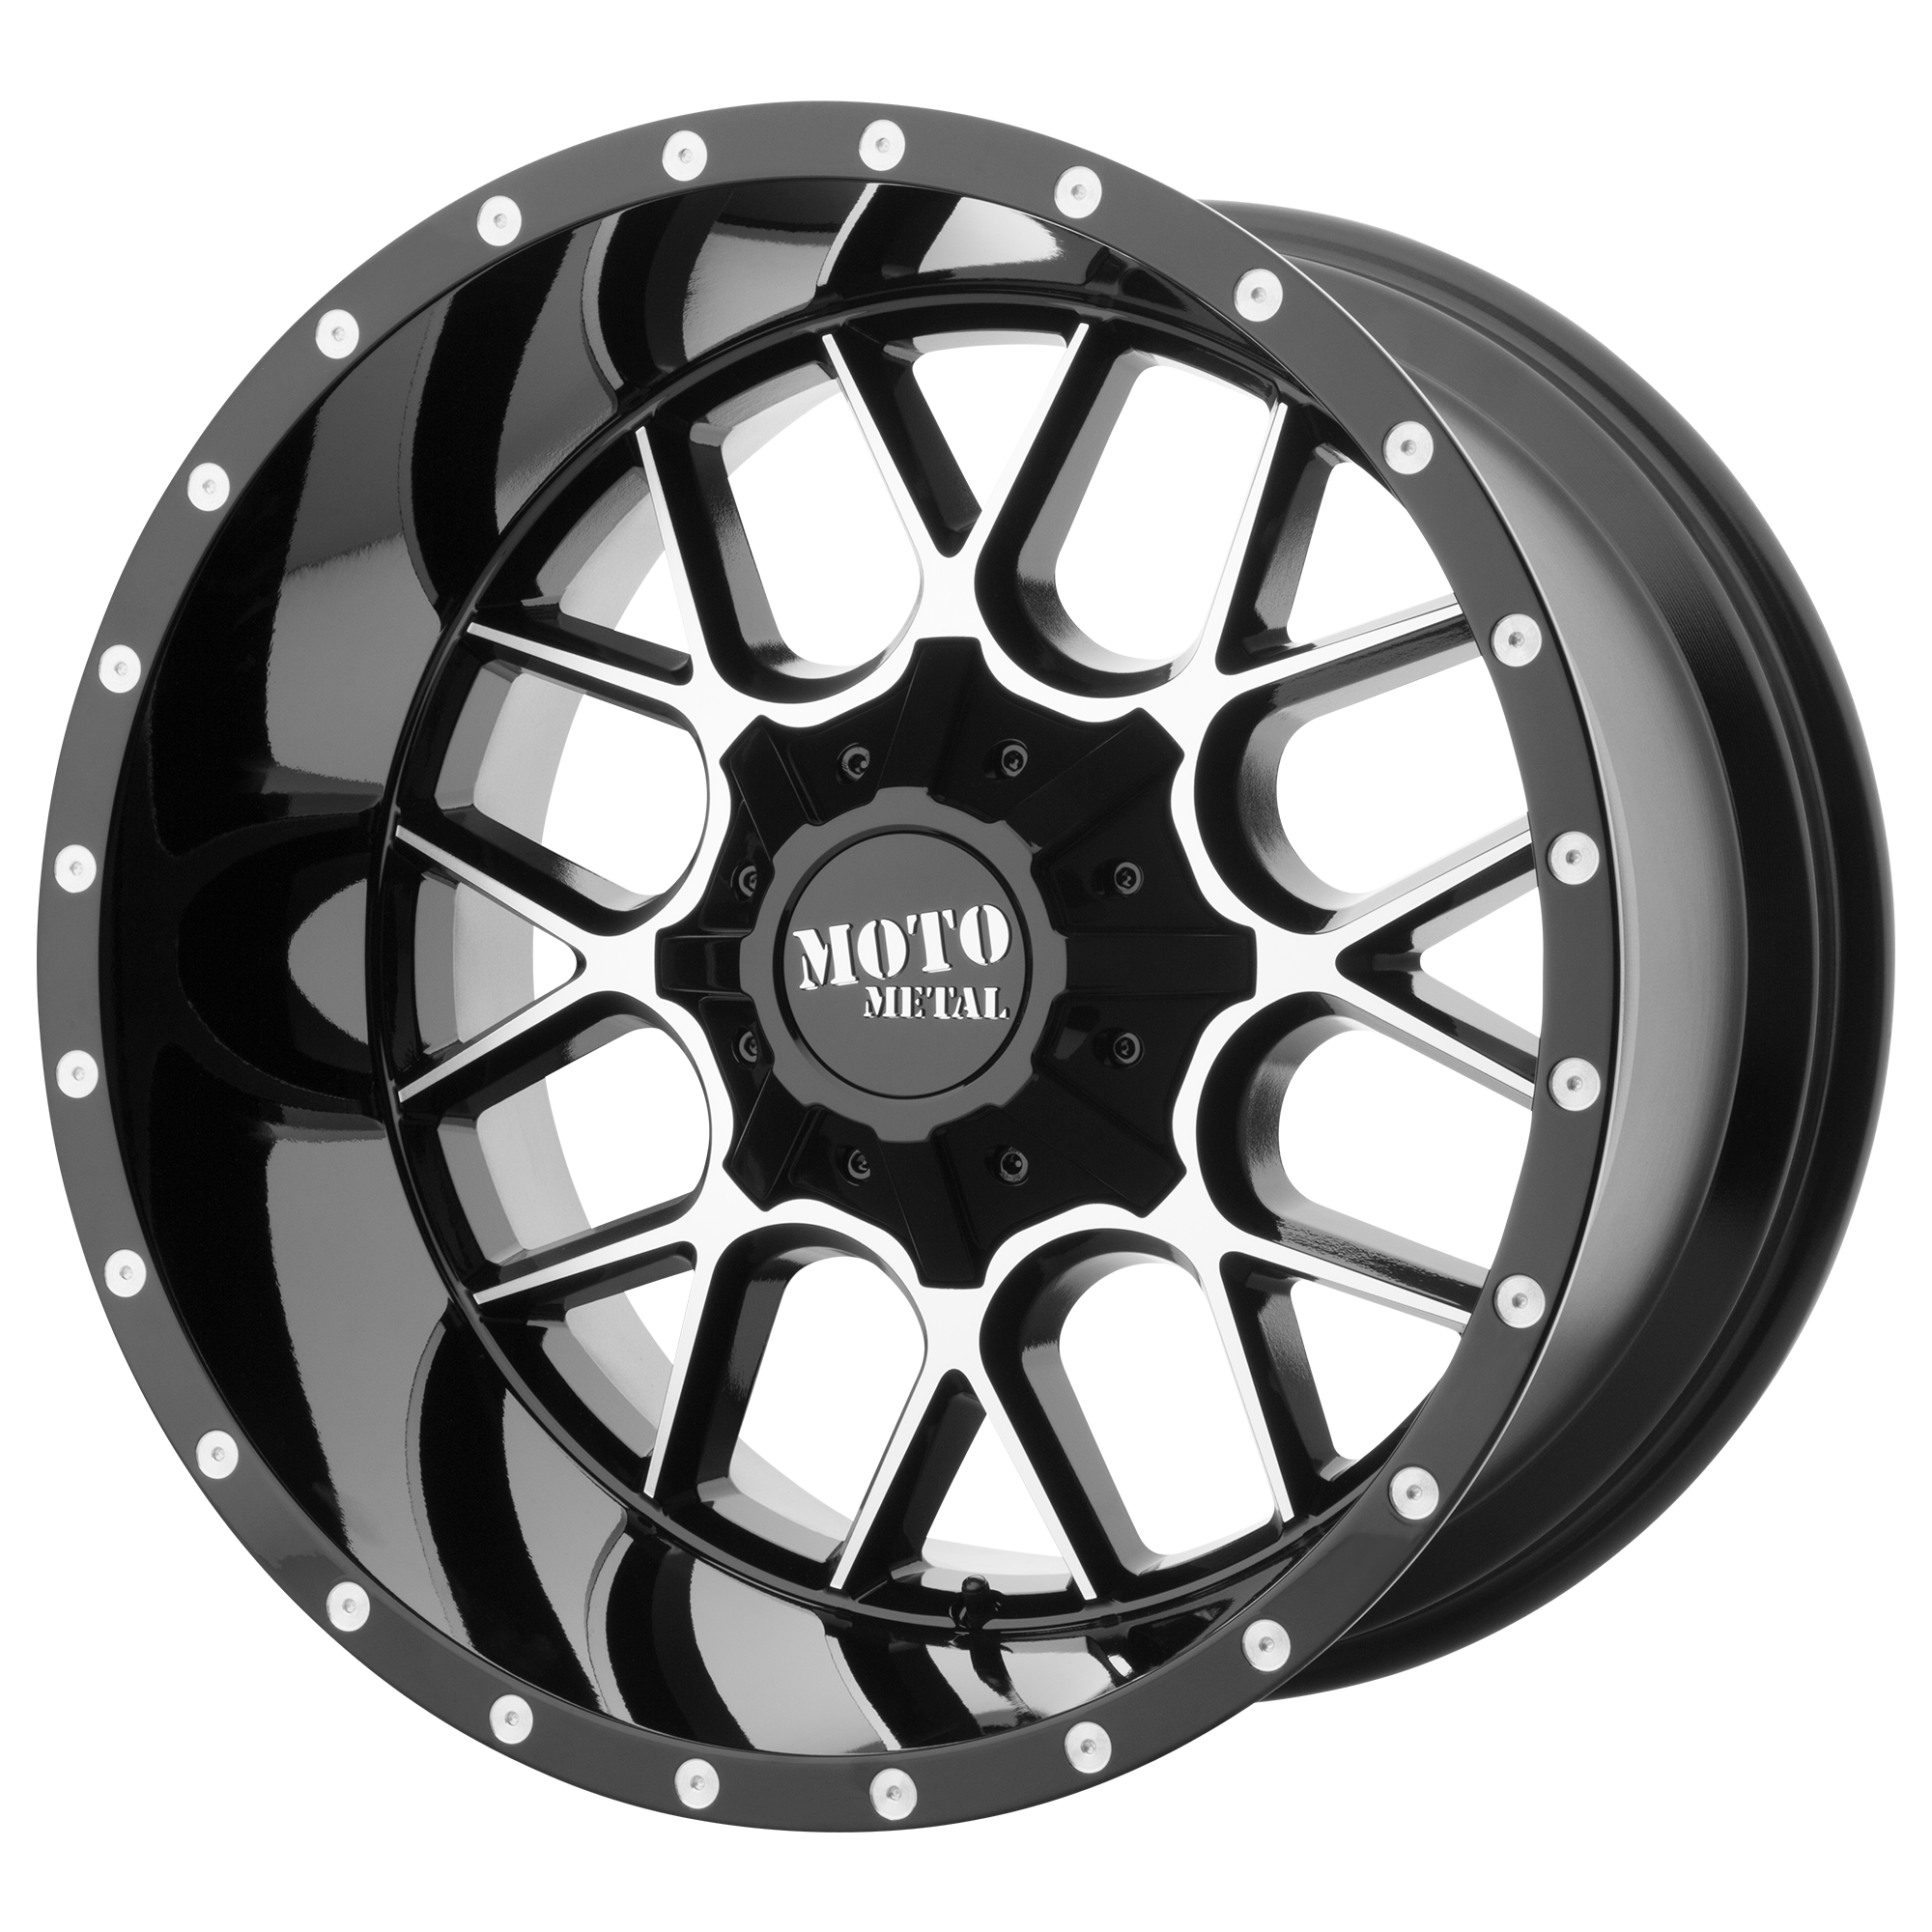 Moto Metal Offroad Wheels SIEGE Gloss Black Machined